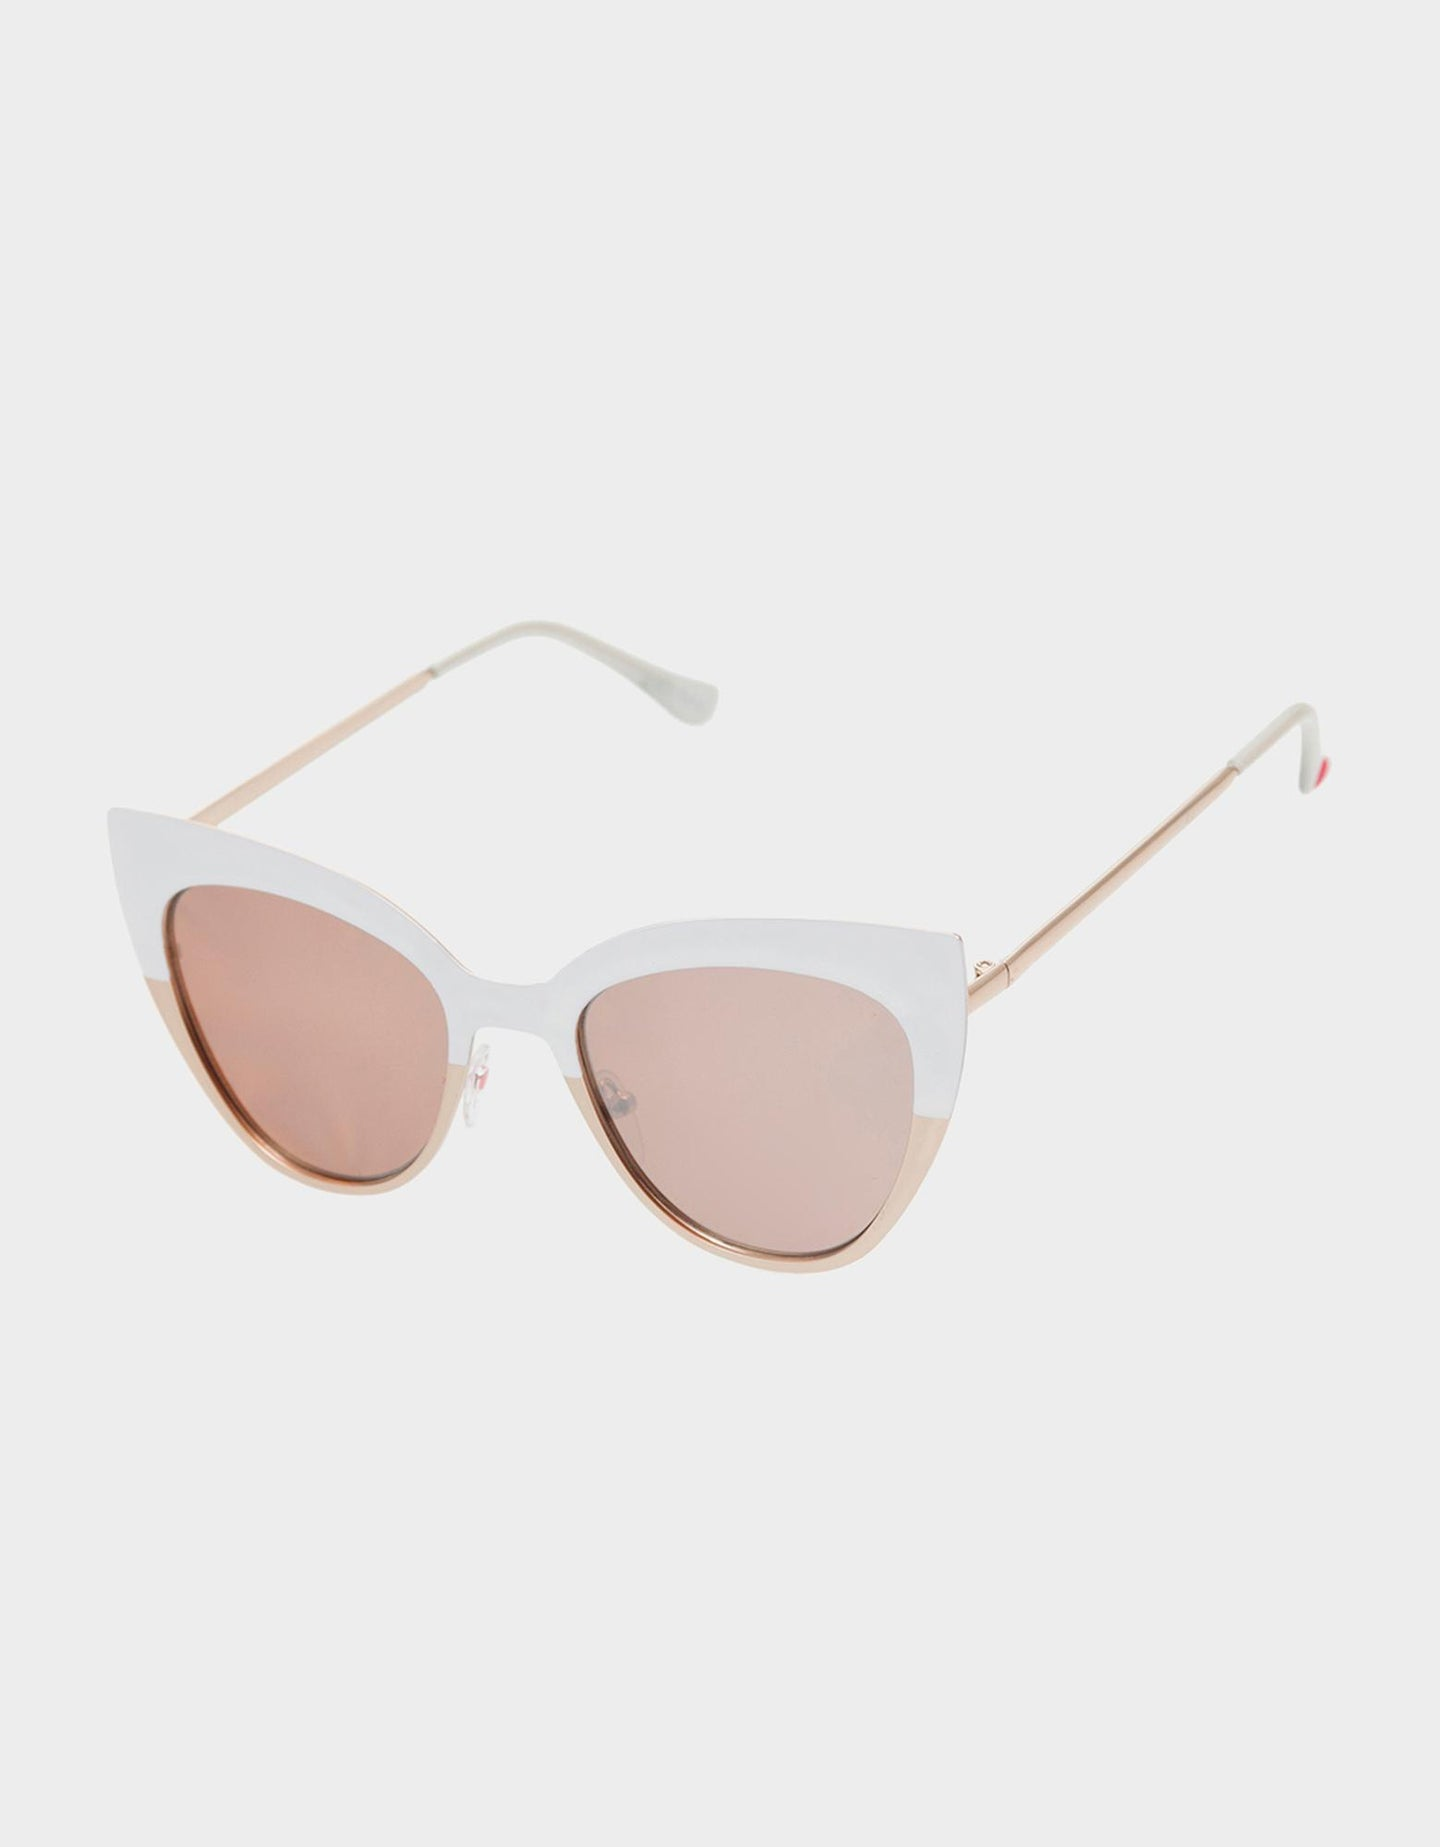 CRISP CAT EYE SUNGLASSES WHITE - ACCESSORIES - Betsey Johnson